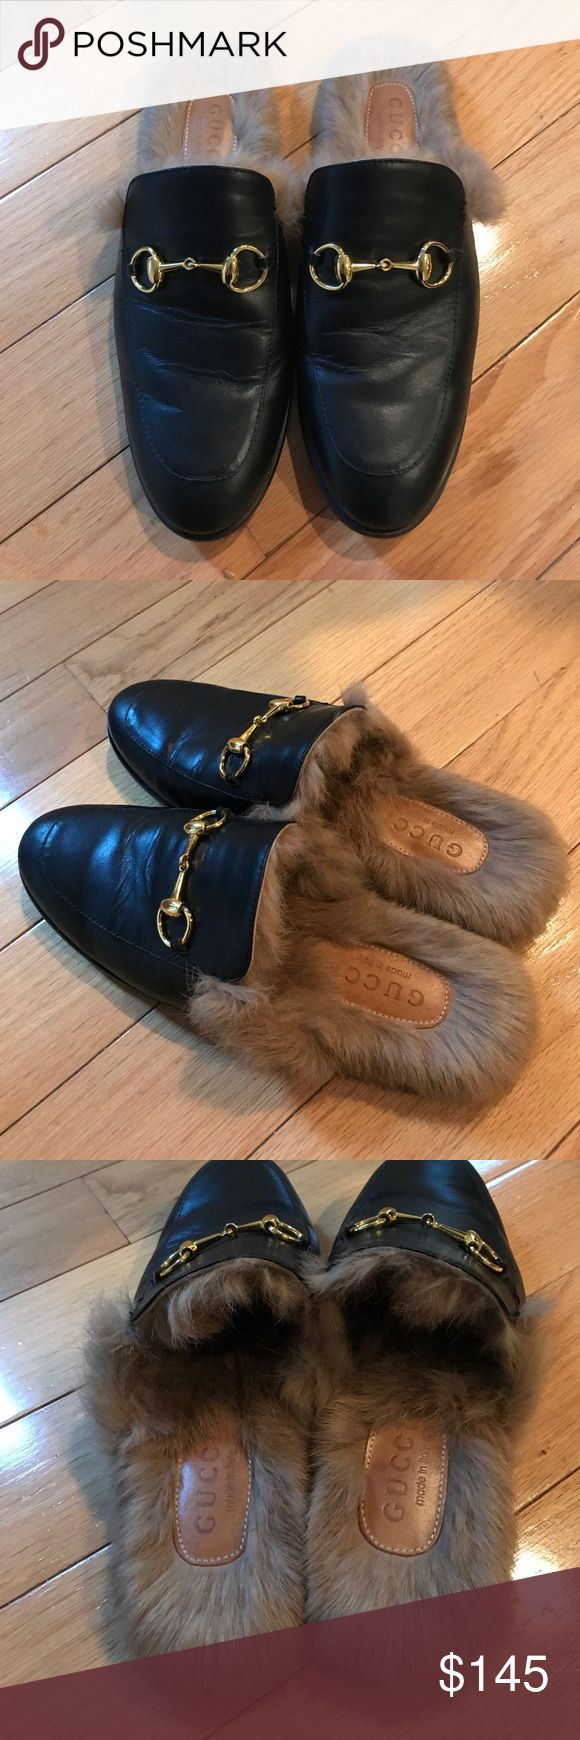 Gucci princetown leather w fur loafer slides mules Great condition genuine leather with real fur black Princetown style slides. Size 40 Shoes Flats & Loafers